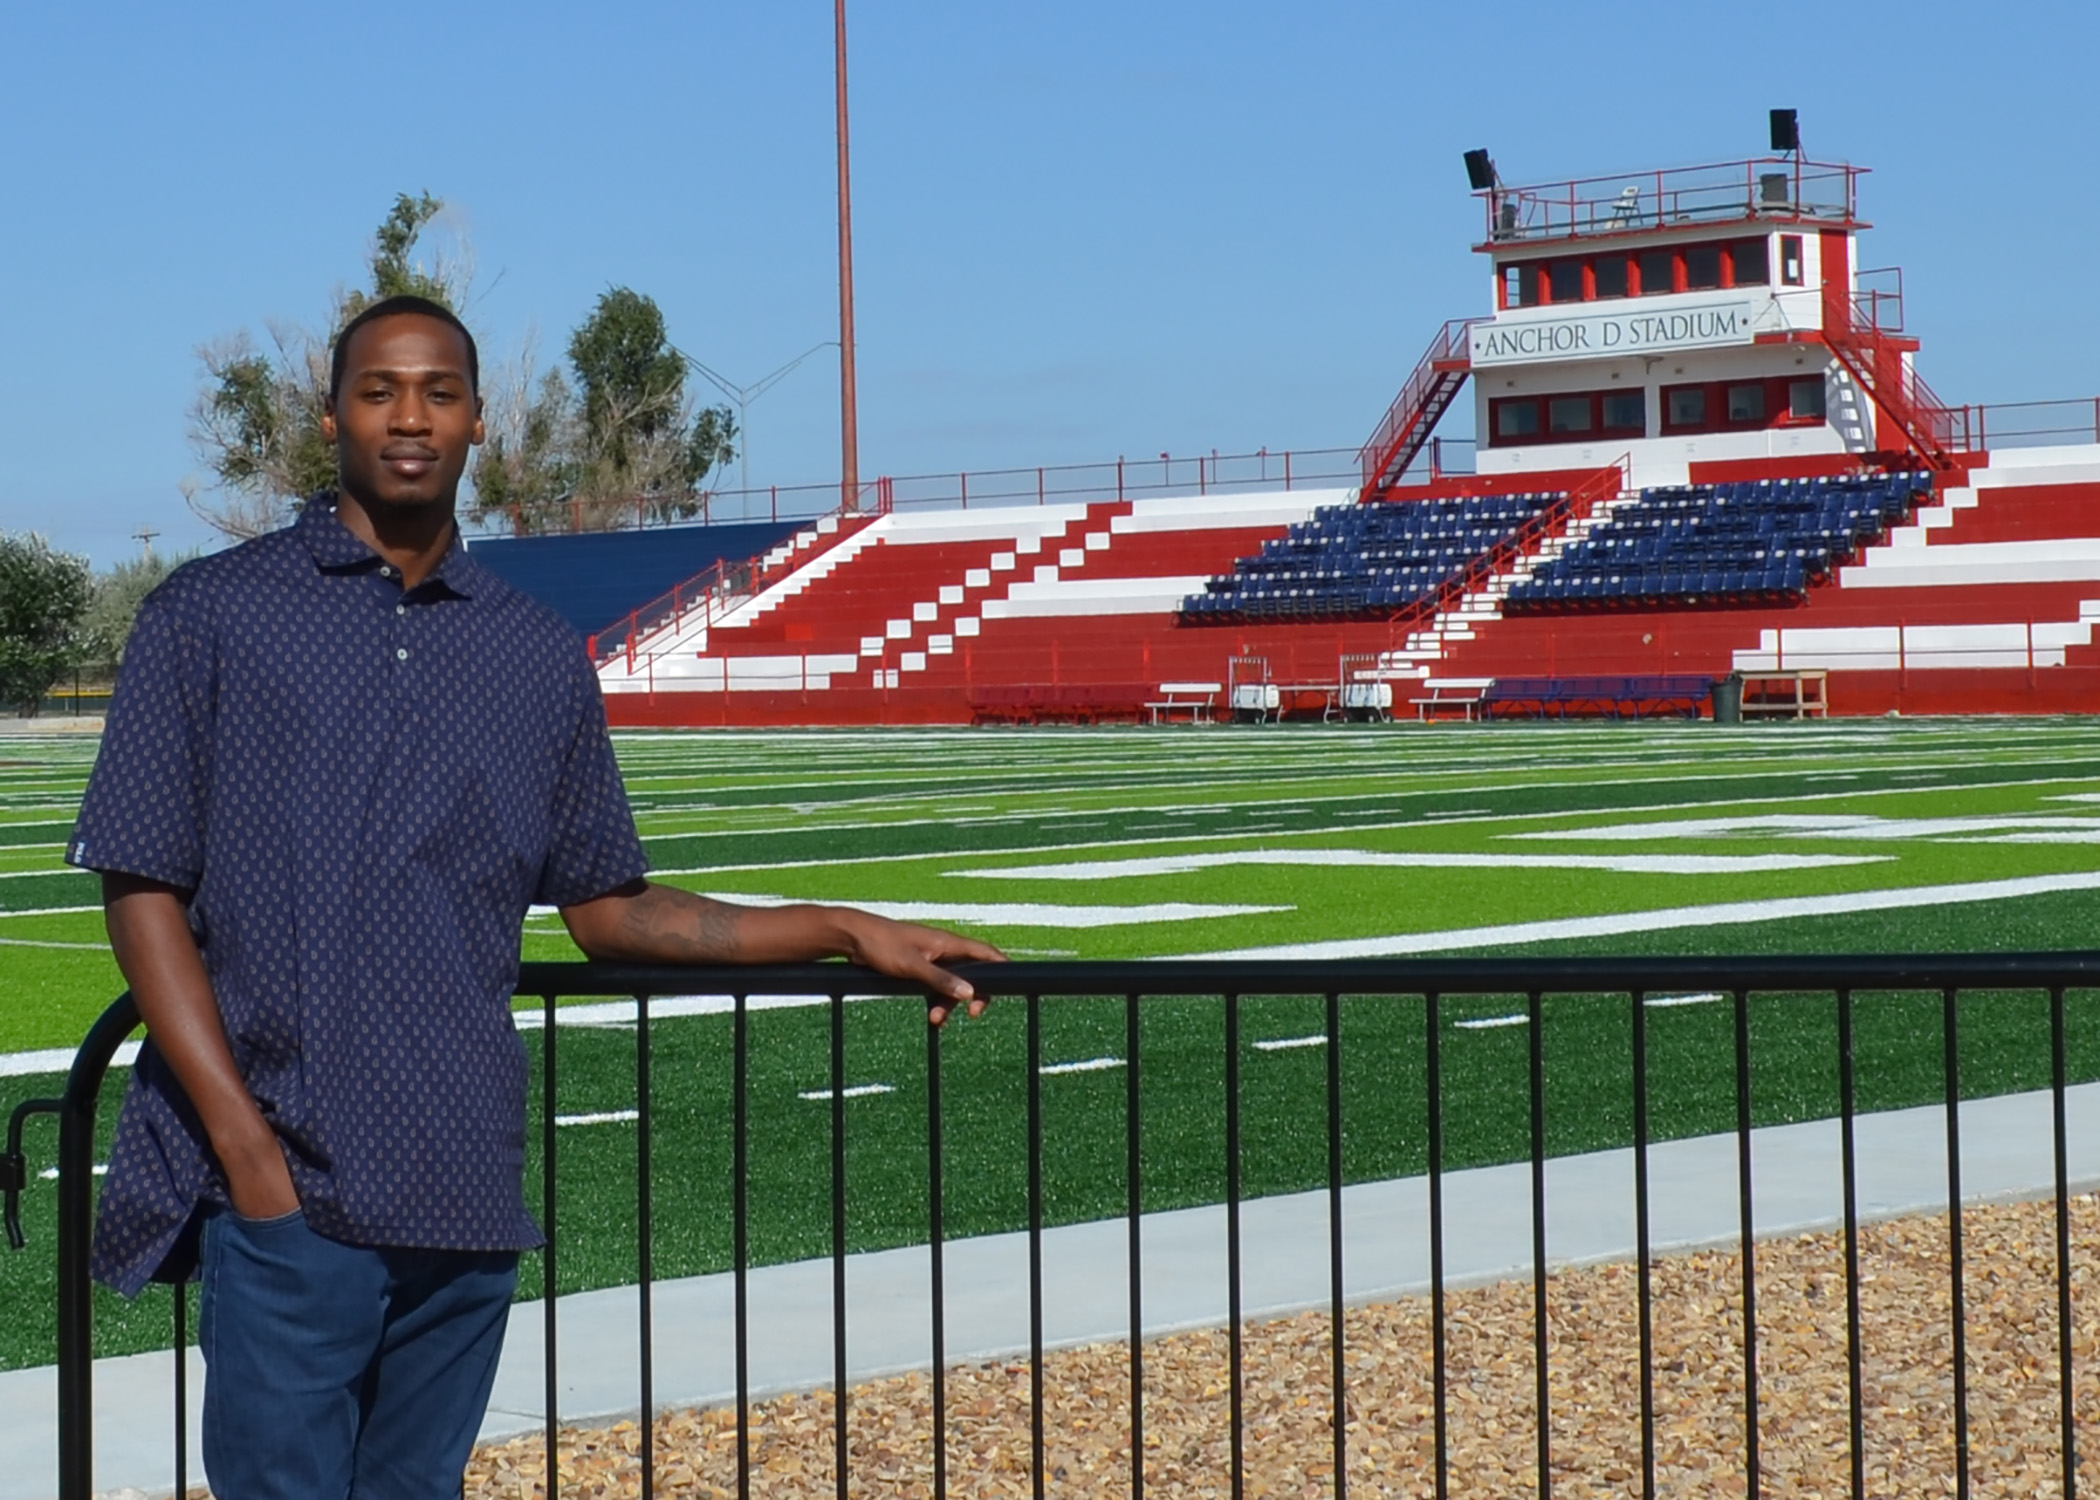 Young man leans on fence in front of football field and stadium